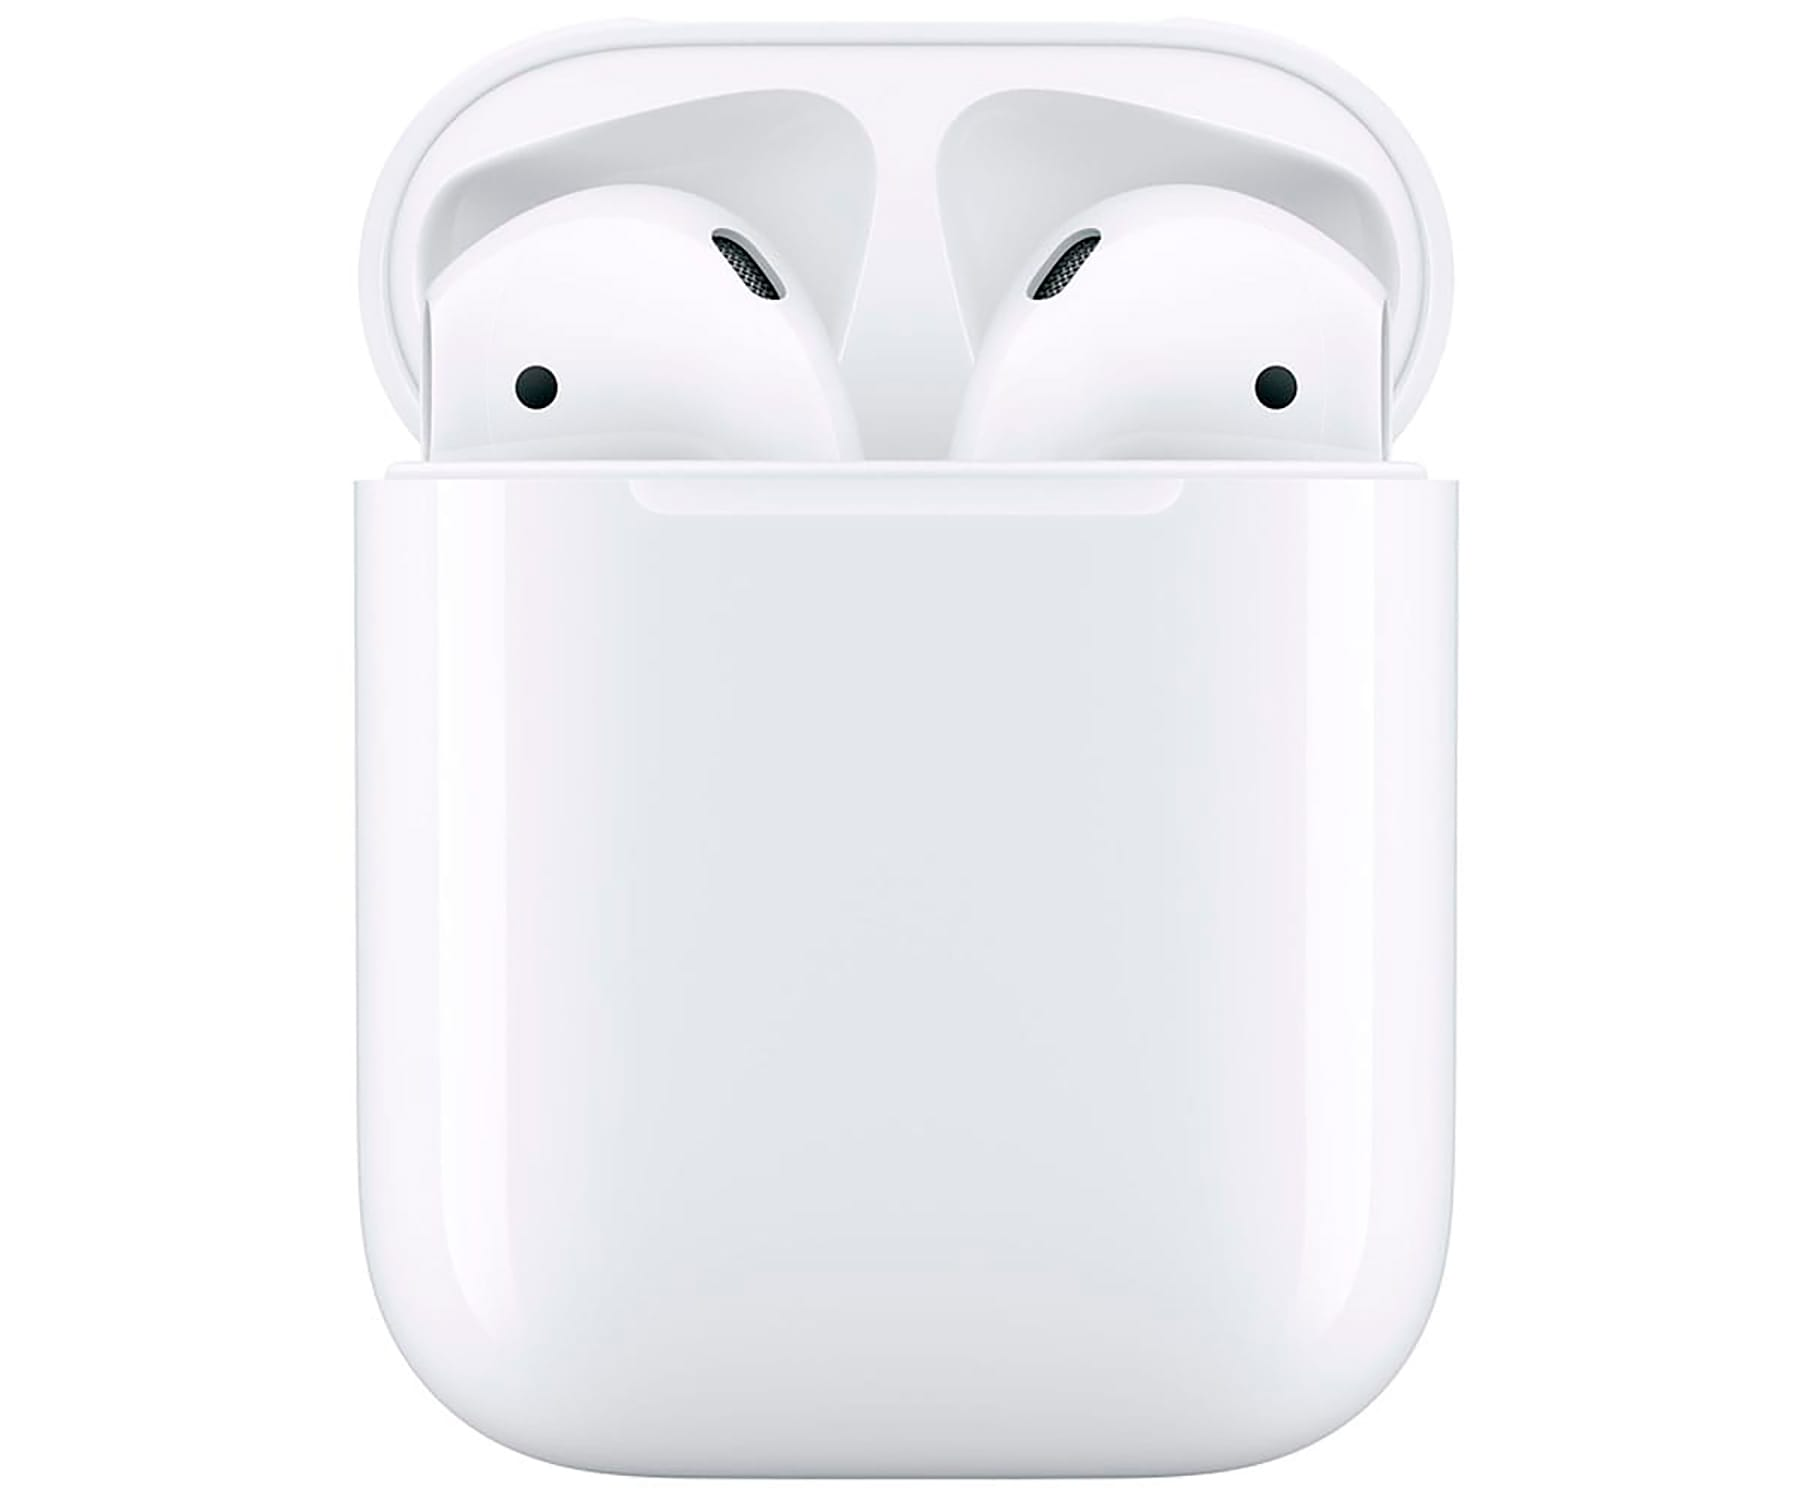 APPLE AIRPODS MV7N2TY/A AURICULARES INALÁMBRICOS SIRI PARA IPHONE IPAD E IPOD CON ESTUCHE DE CARGA LIGHTNING